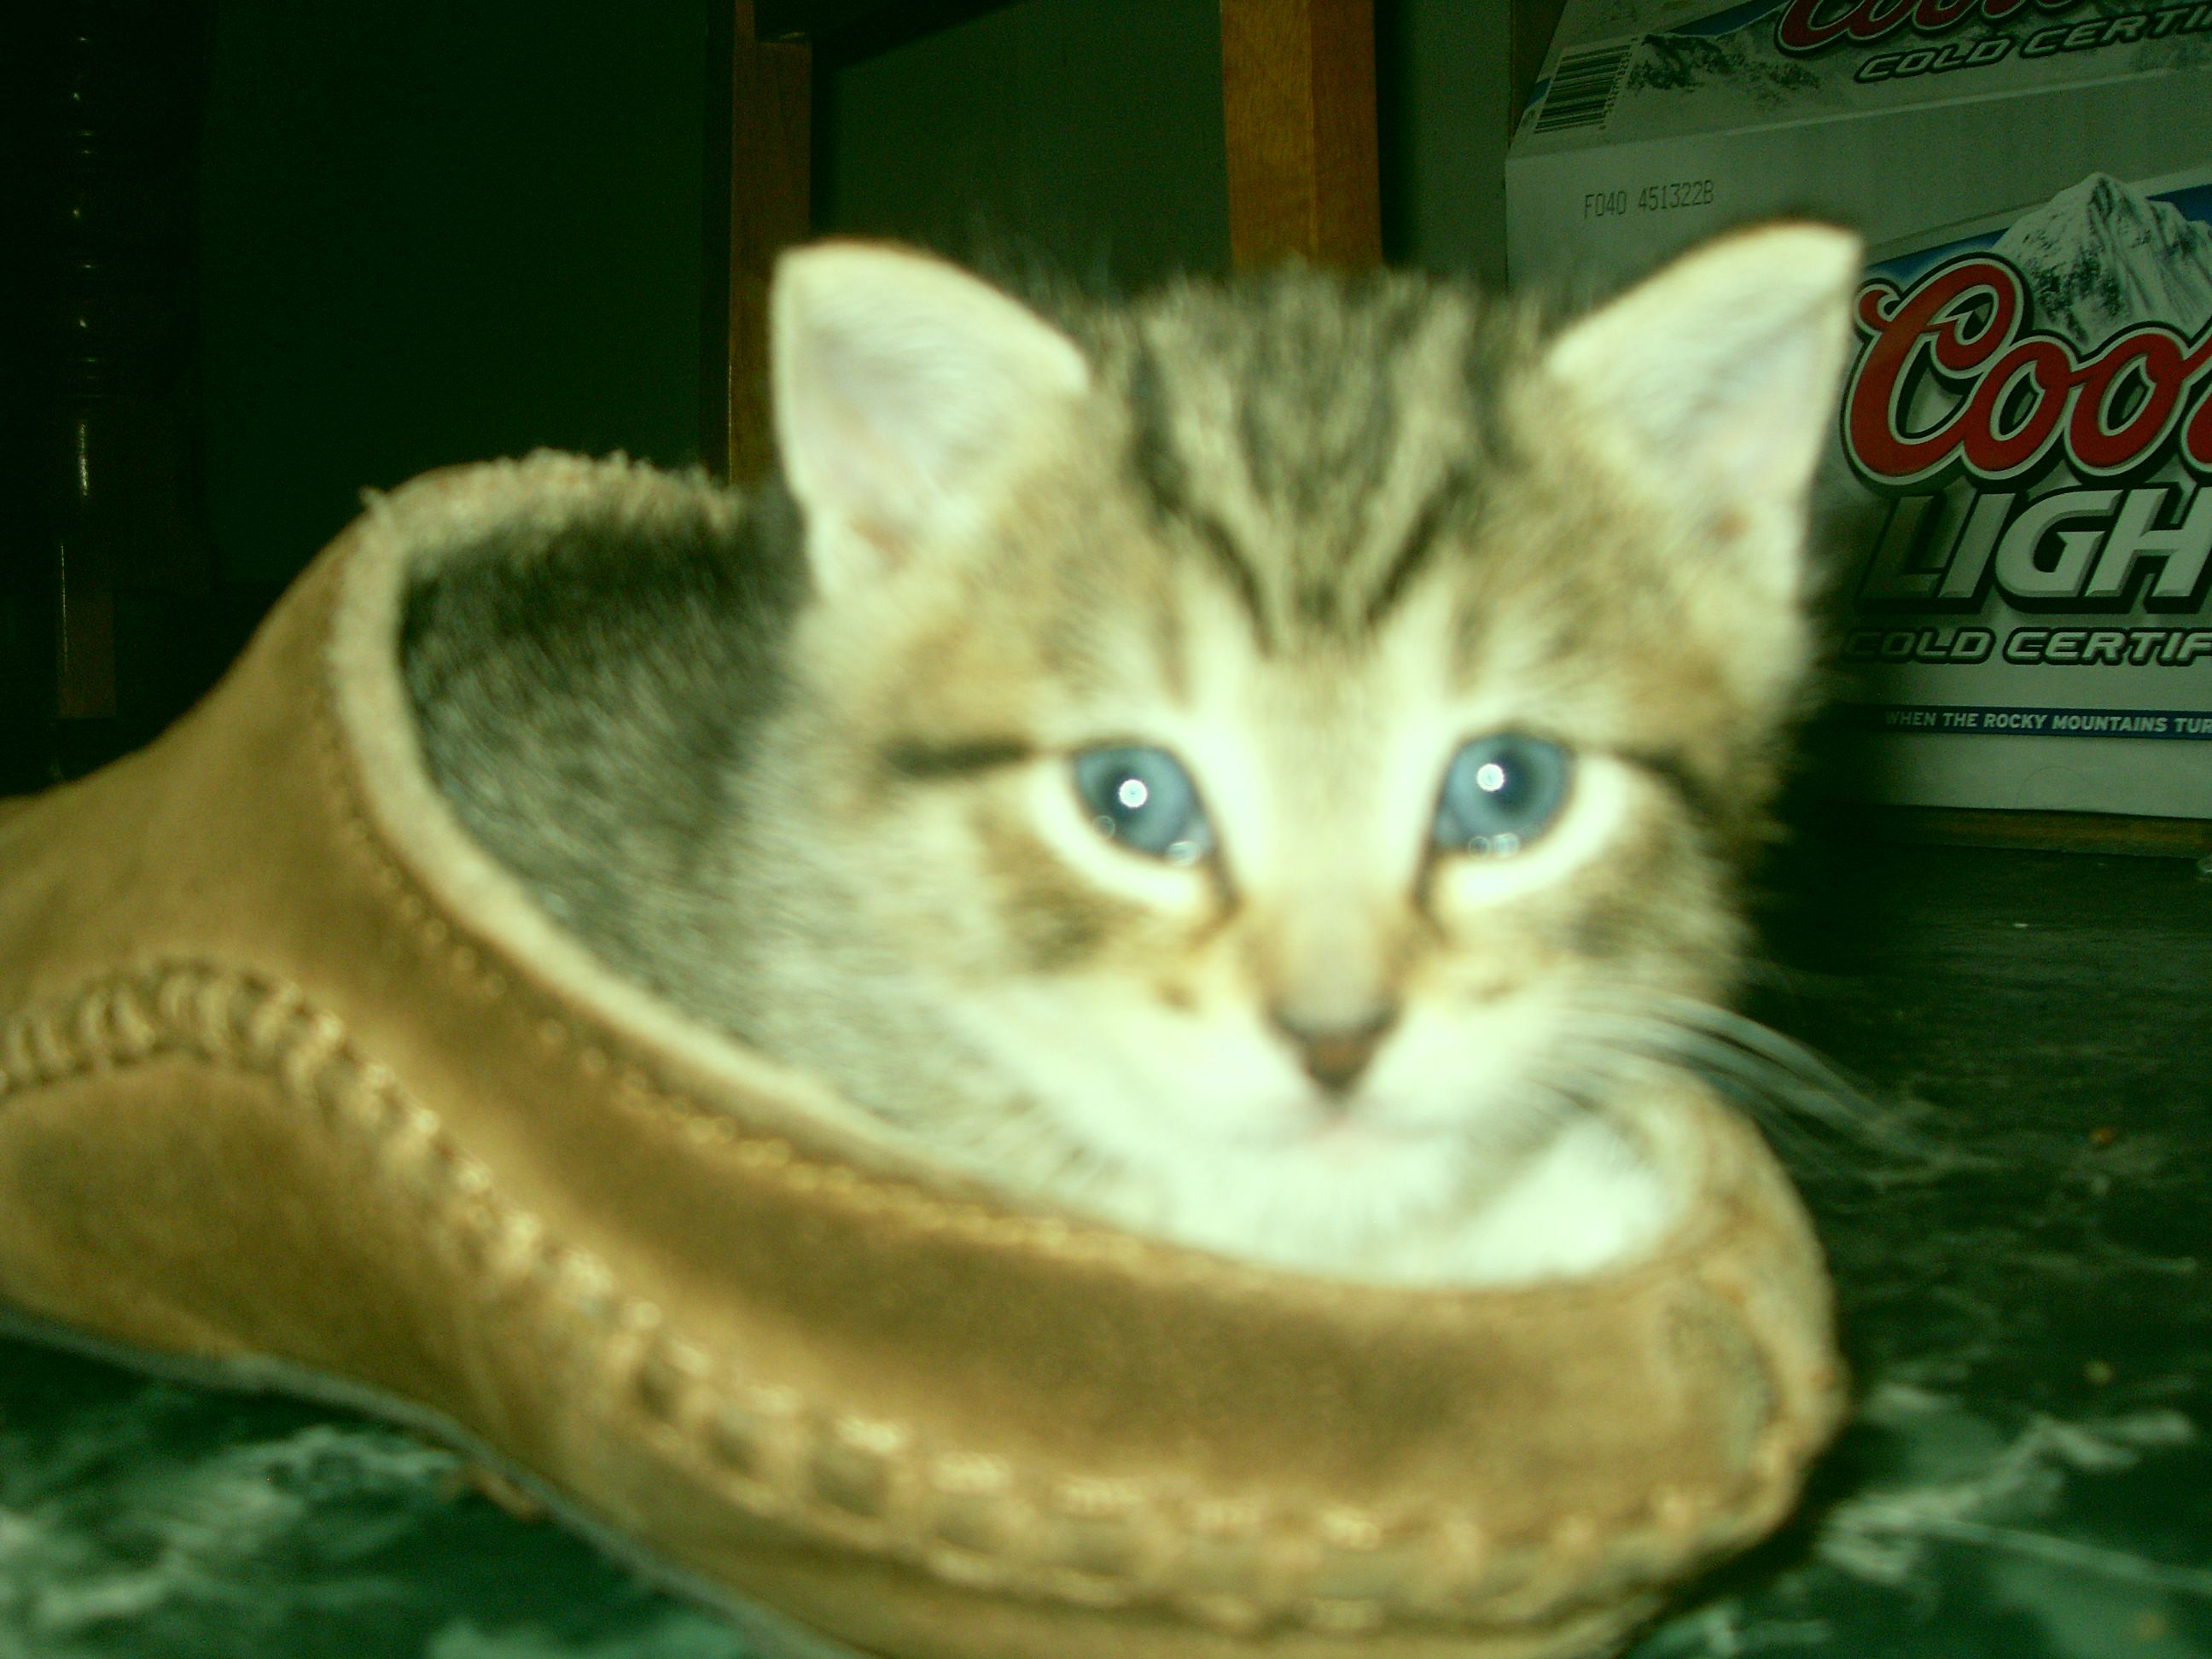 chillen in a slipper!